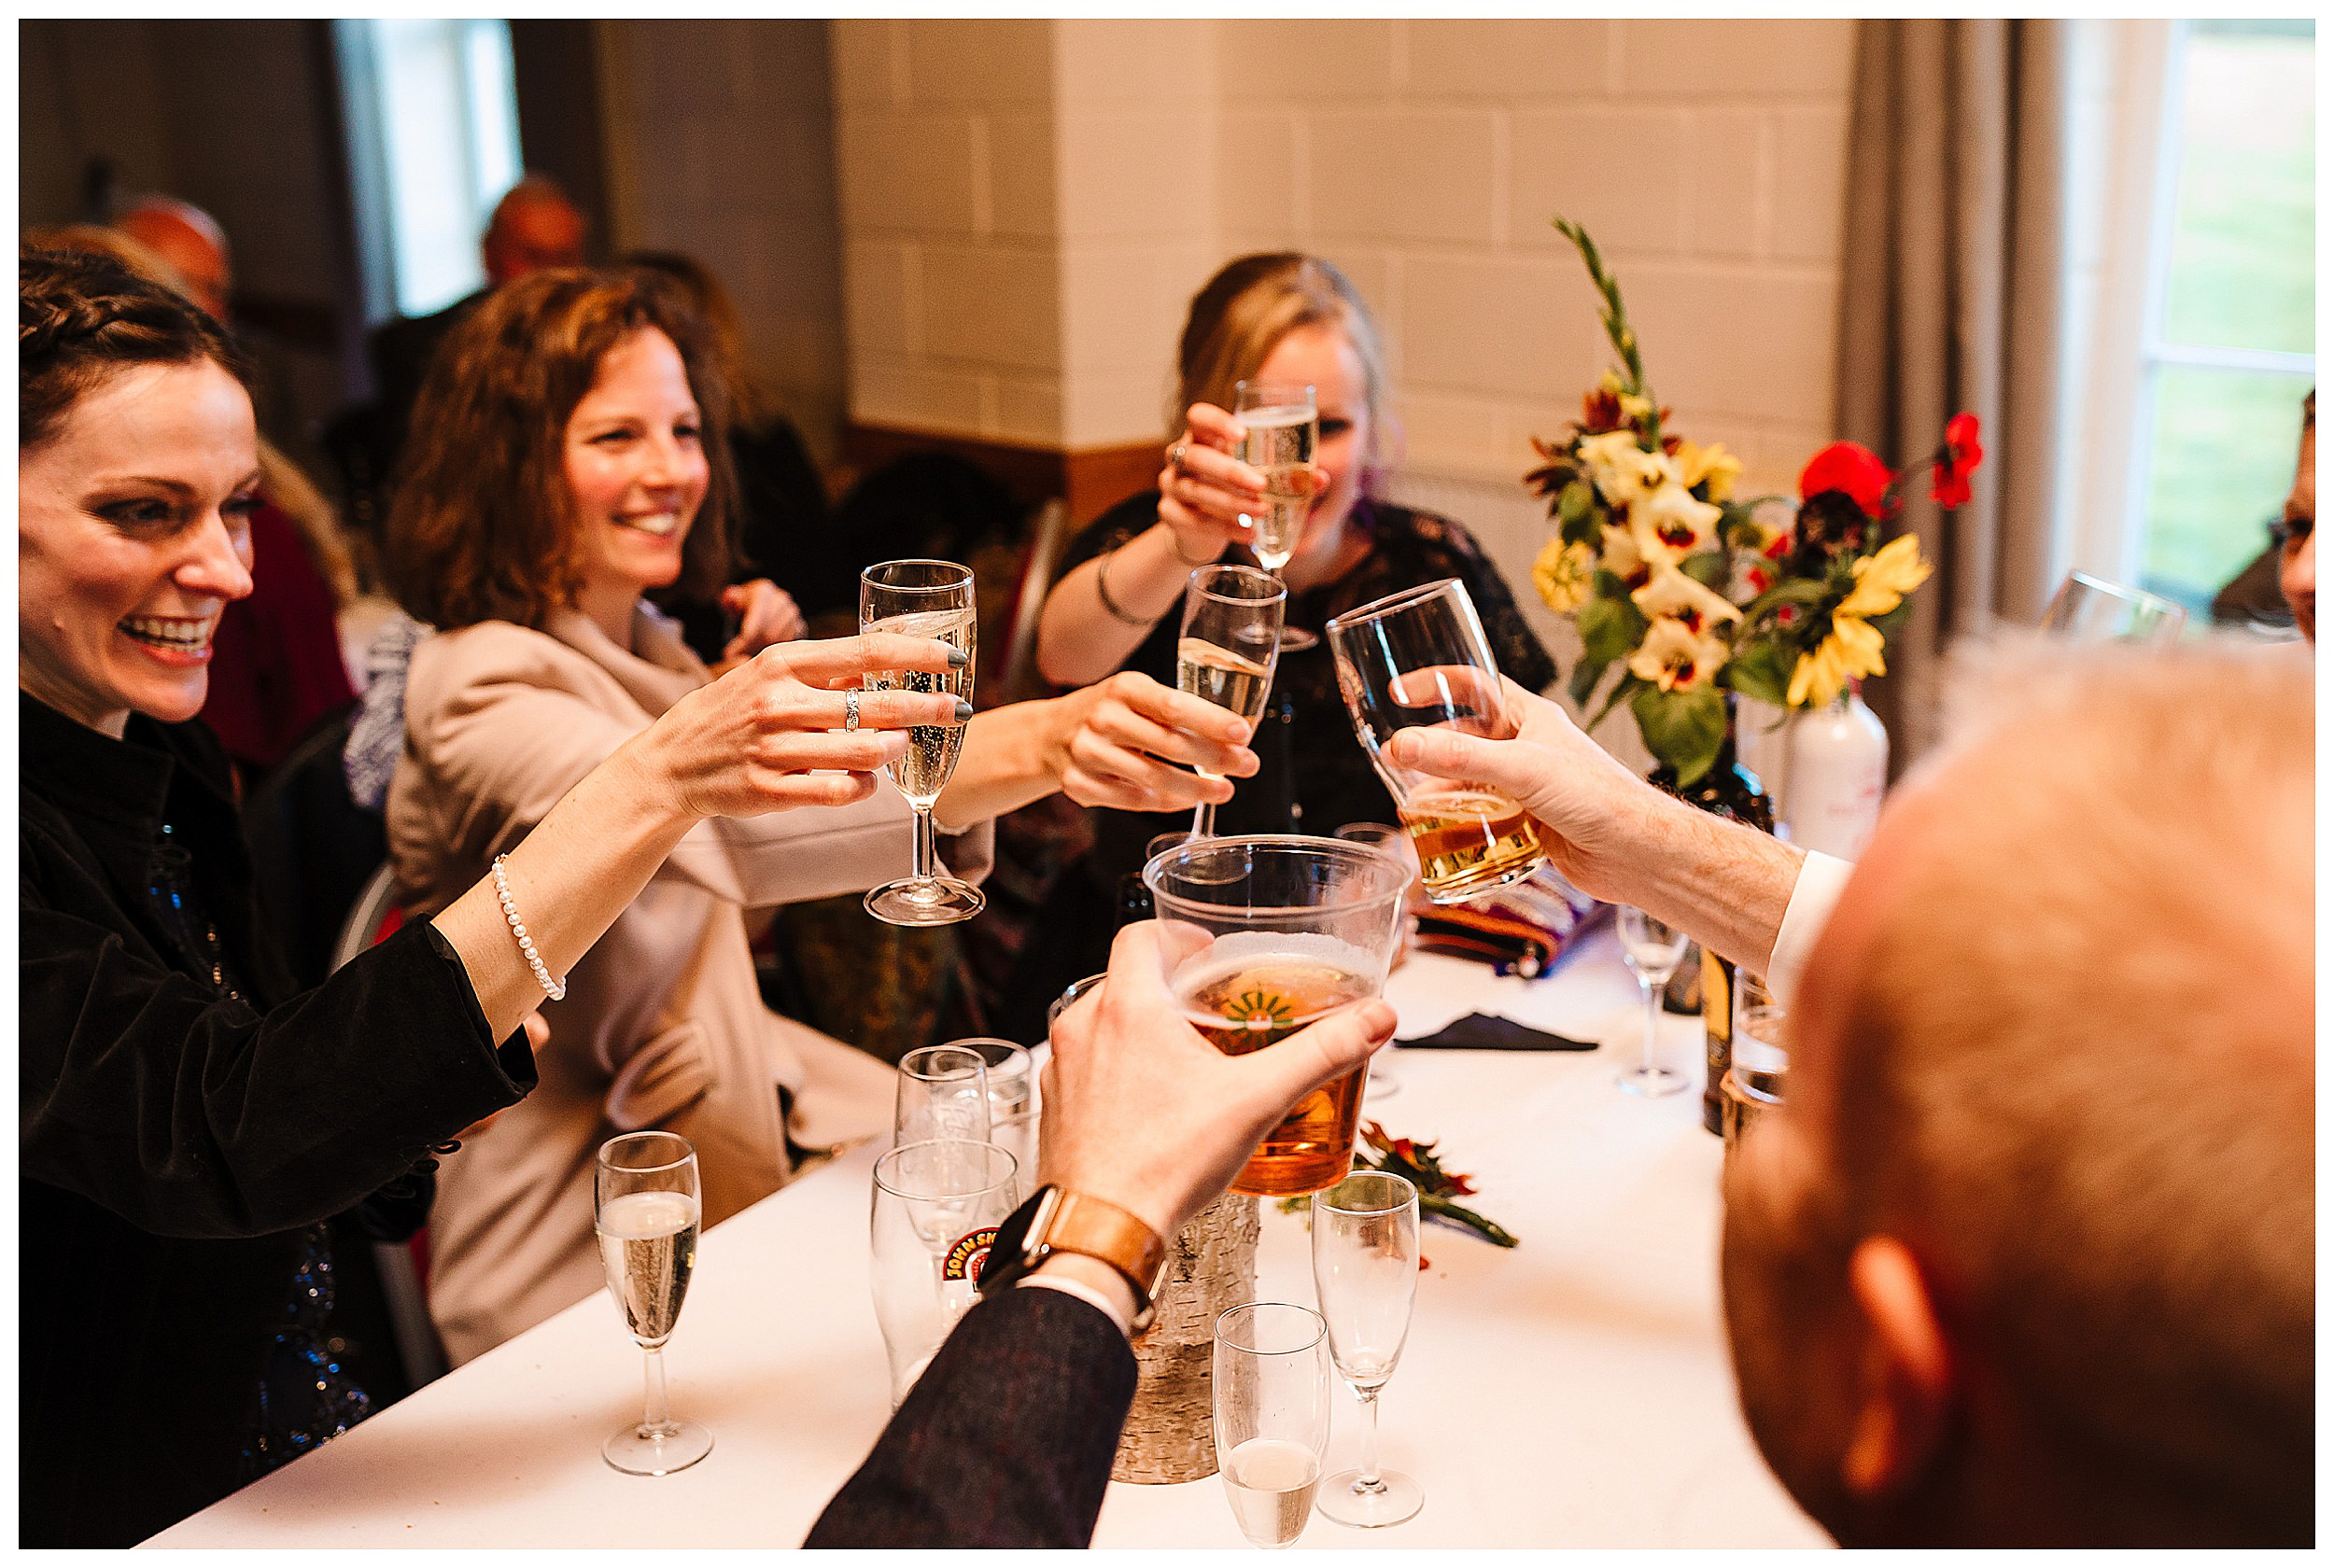 Guests at a wedding clinking their glasses and cheers-ing